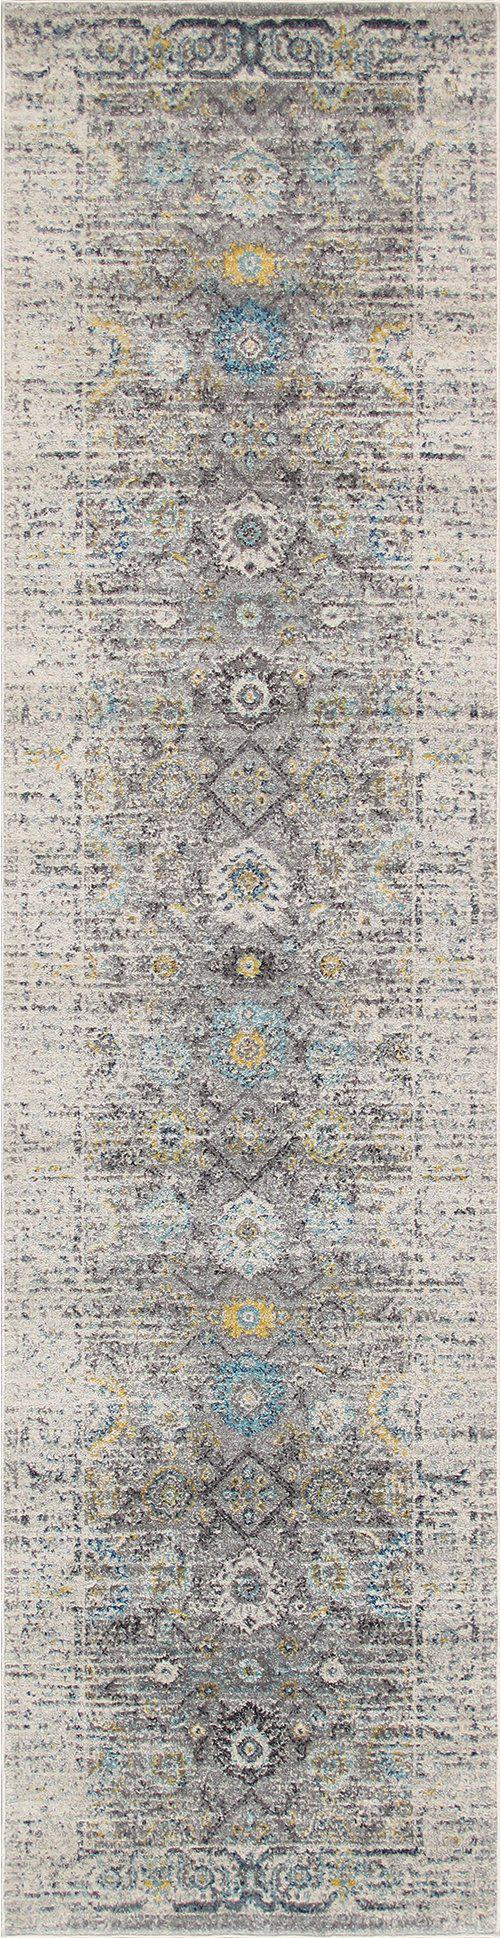 chelsea-distressed-floral-runner-rugs